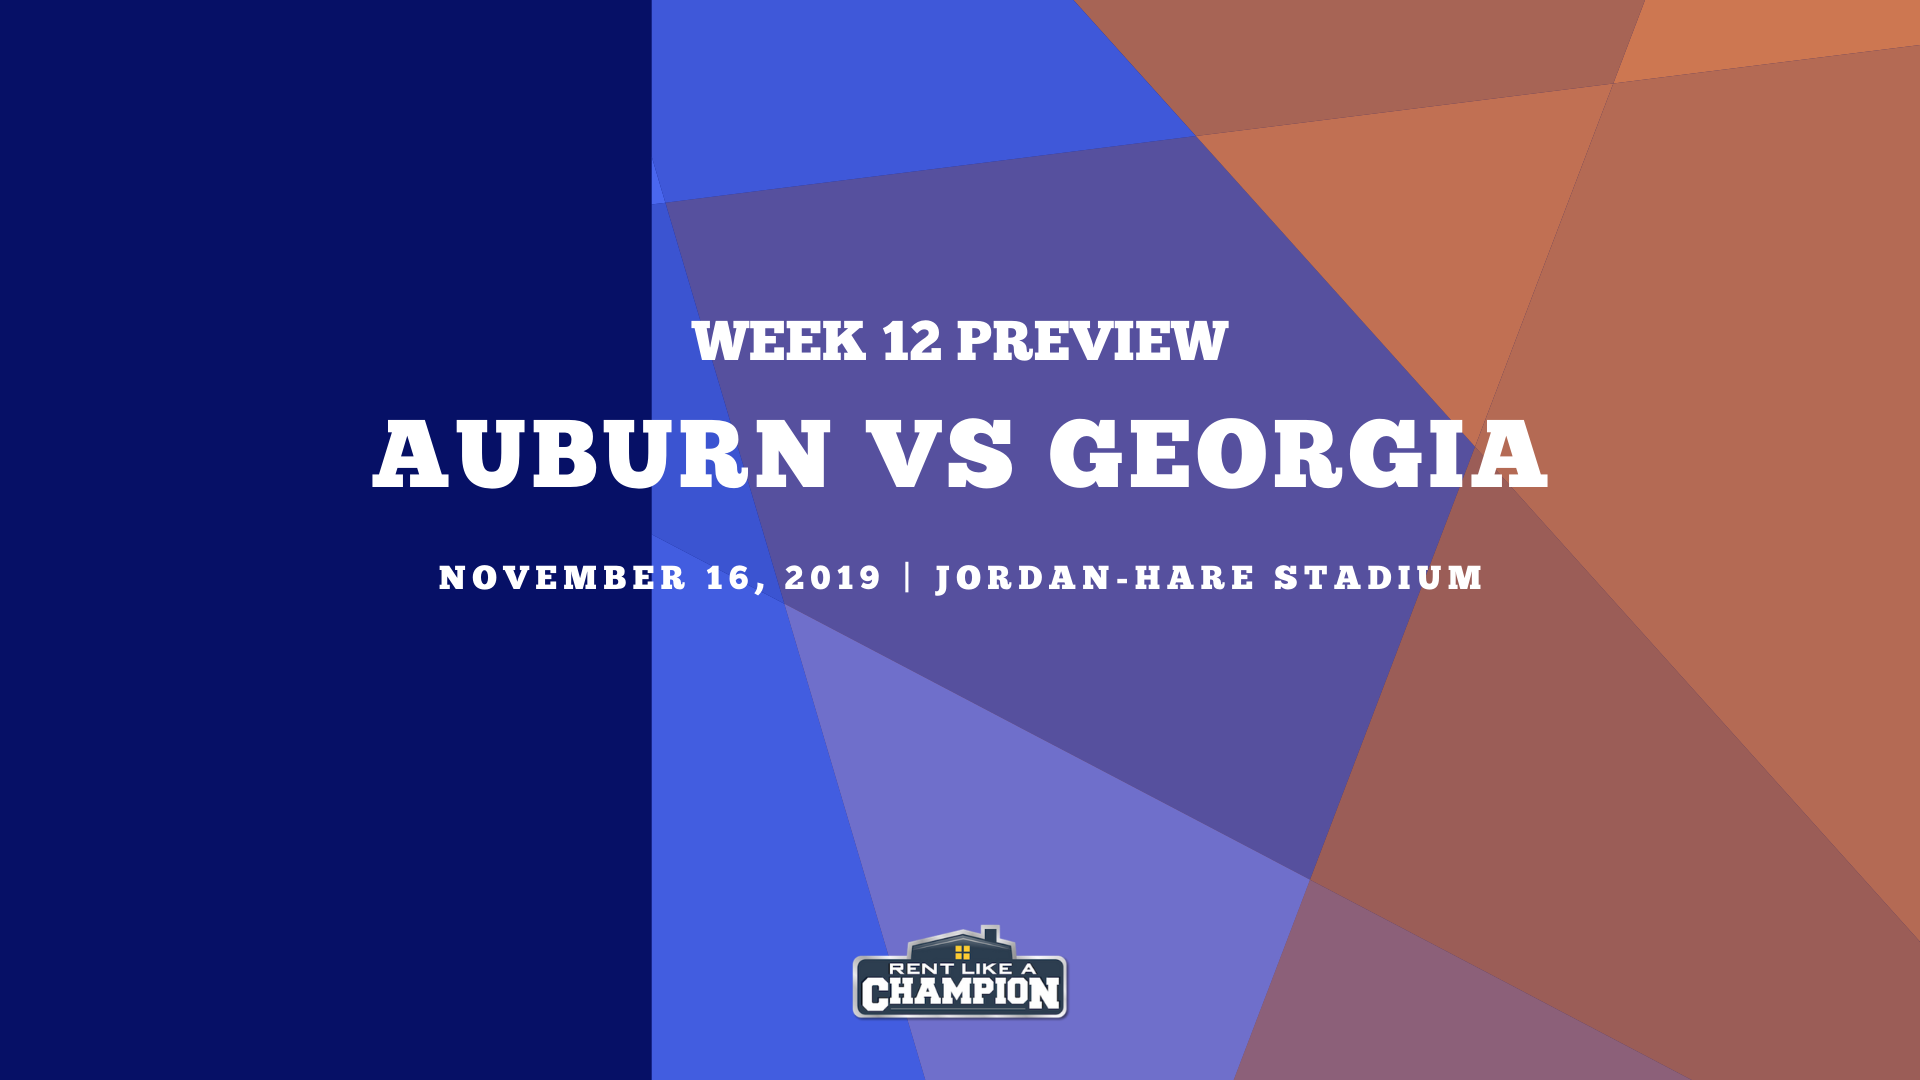 Auburn Game Preview Template (8)